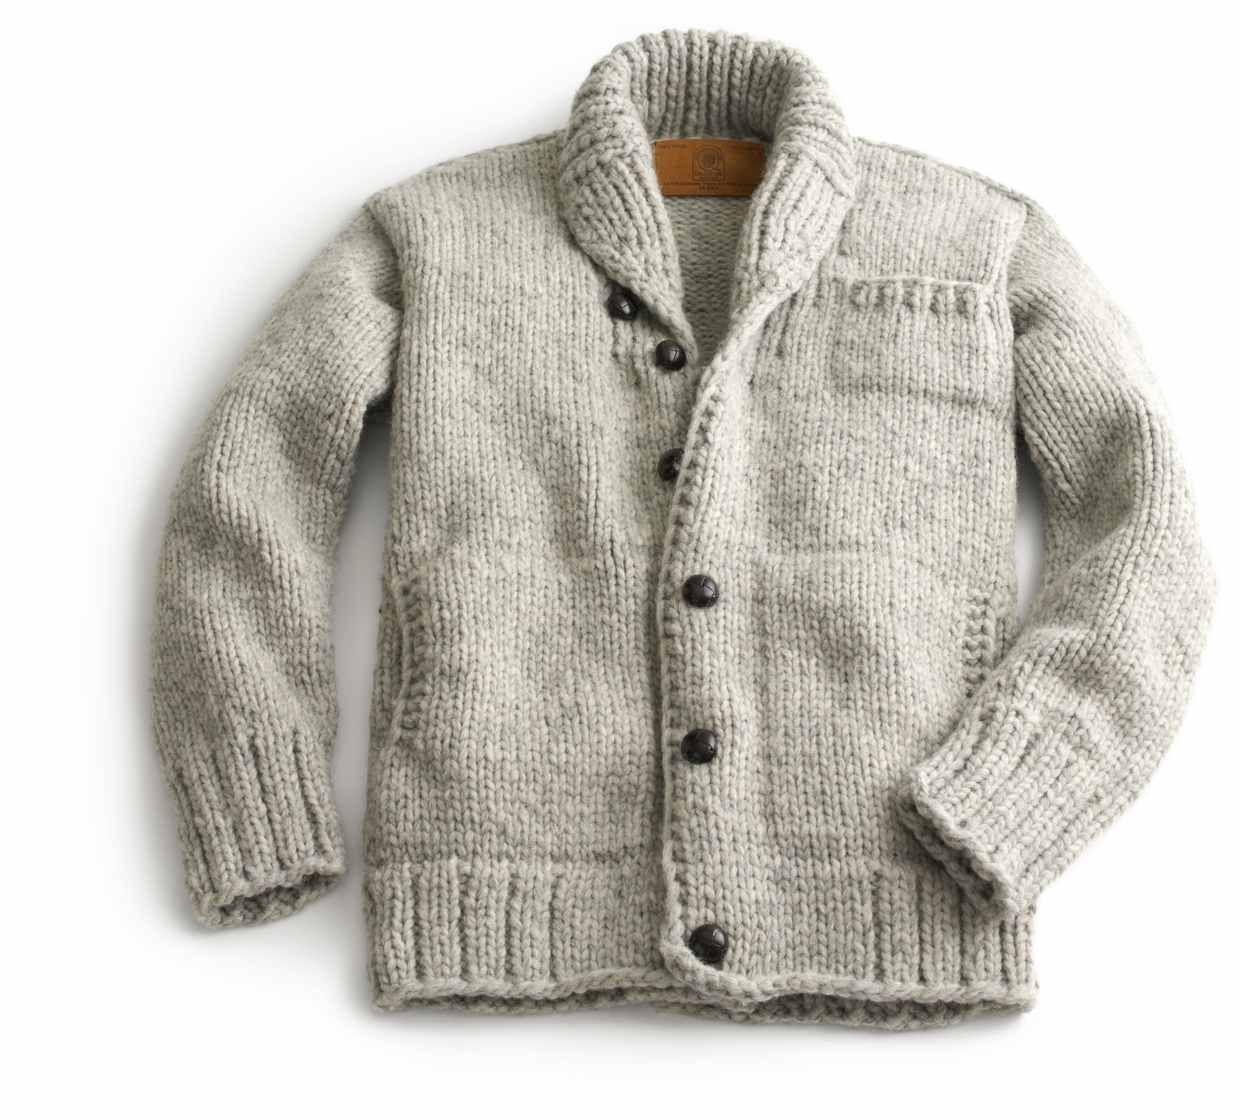 Canadian Sweater Company Cowichan sweater (Made in